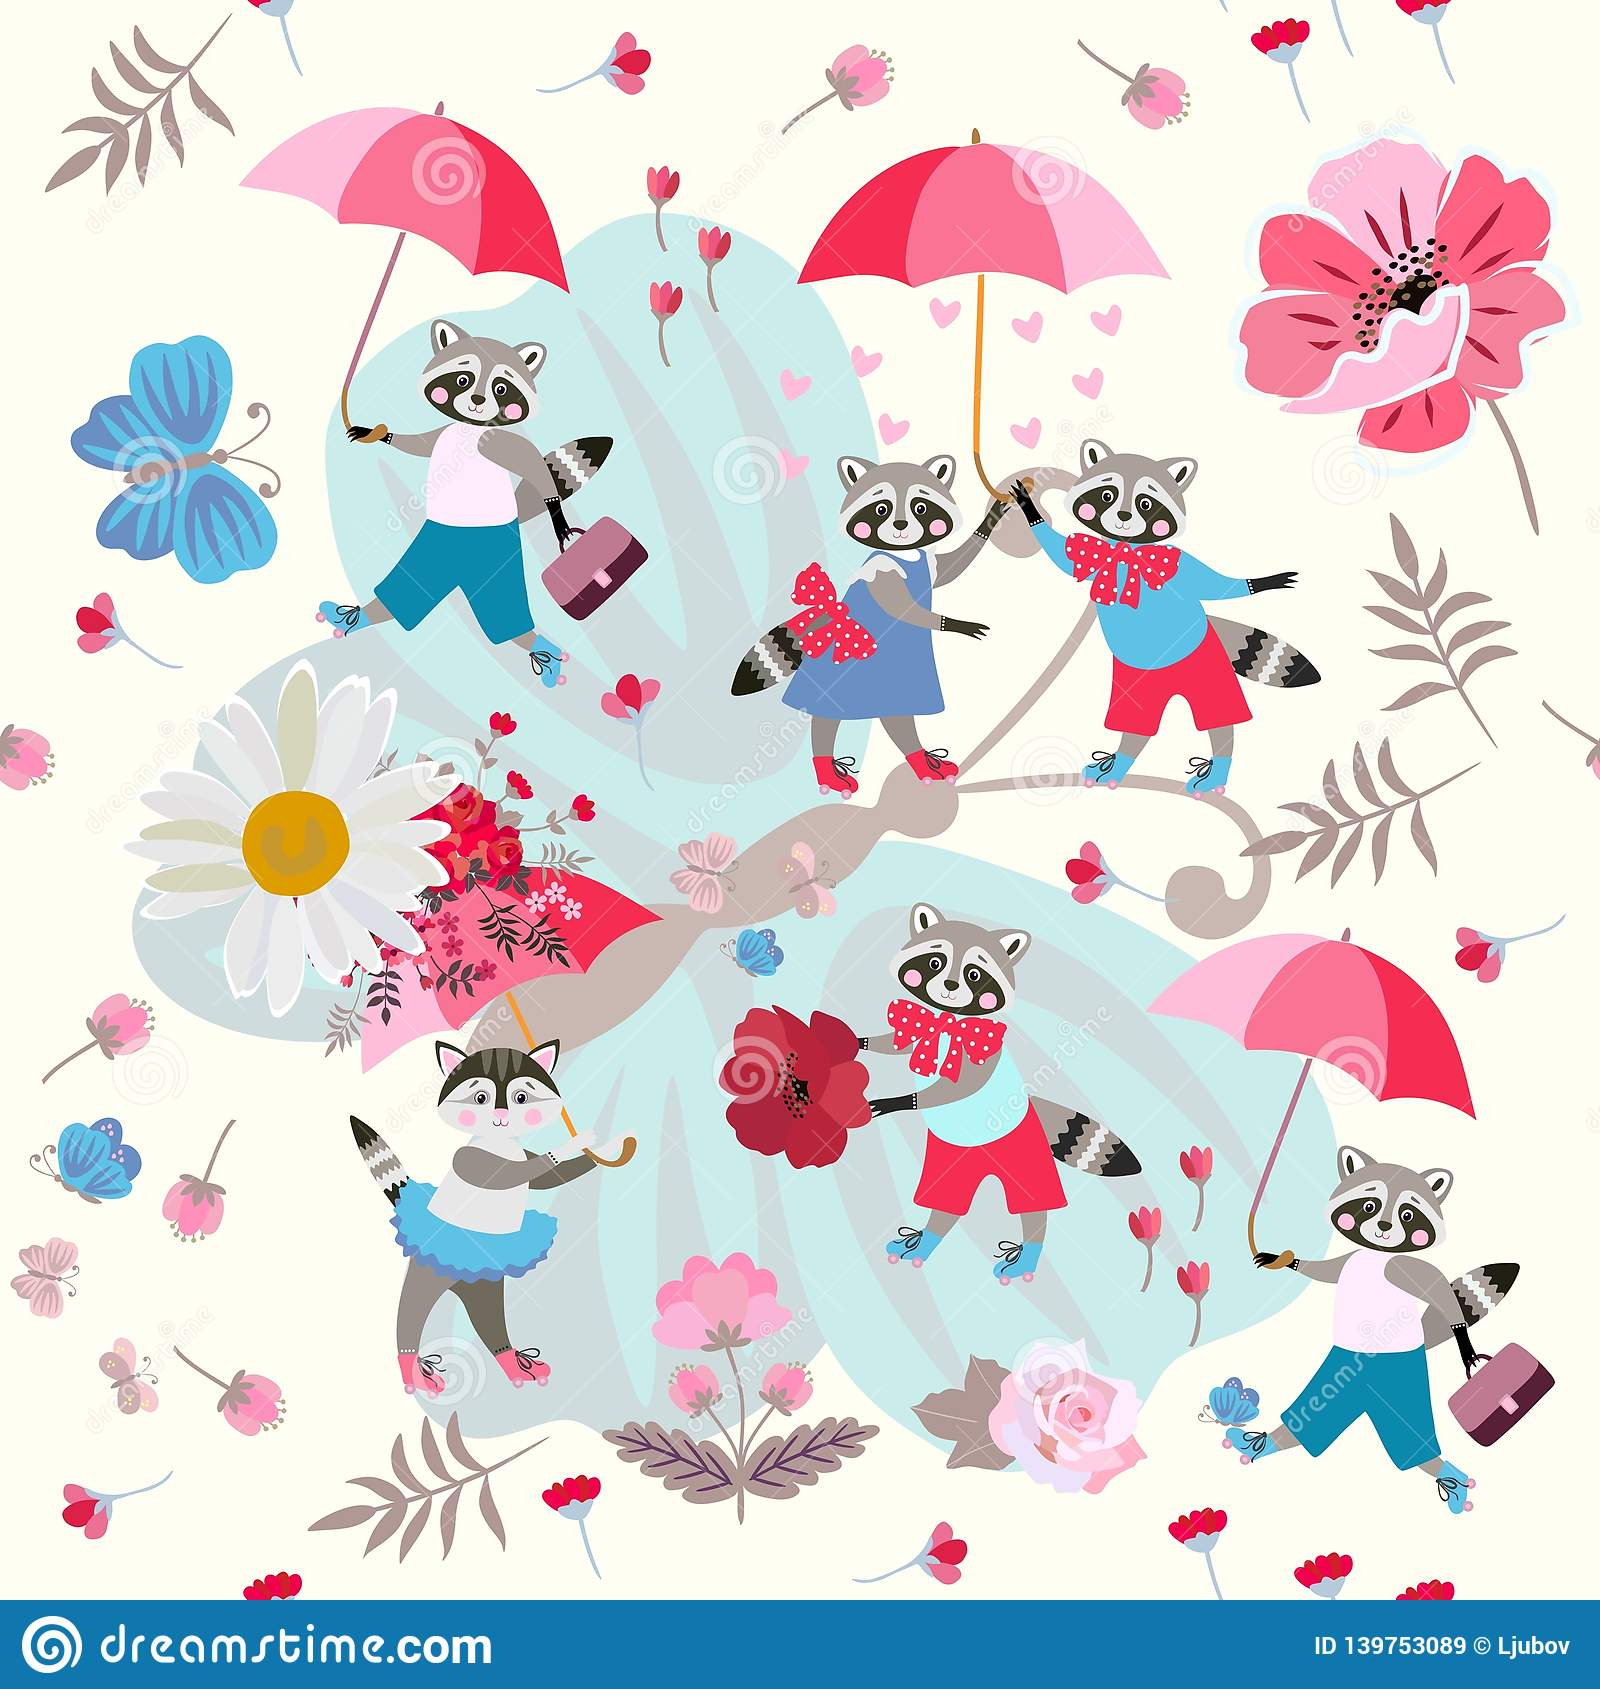 1b5e5804fcd Lovely cartoon raccoons and kitty with umbrellas and flowers on a large  blue butterfly. Seamless pattern for children.